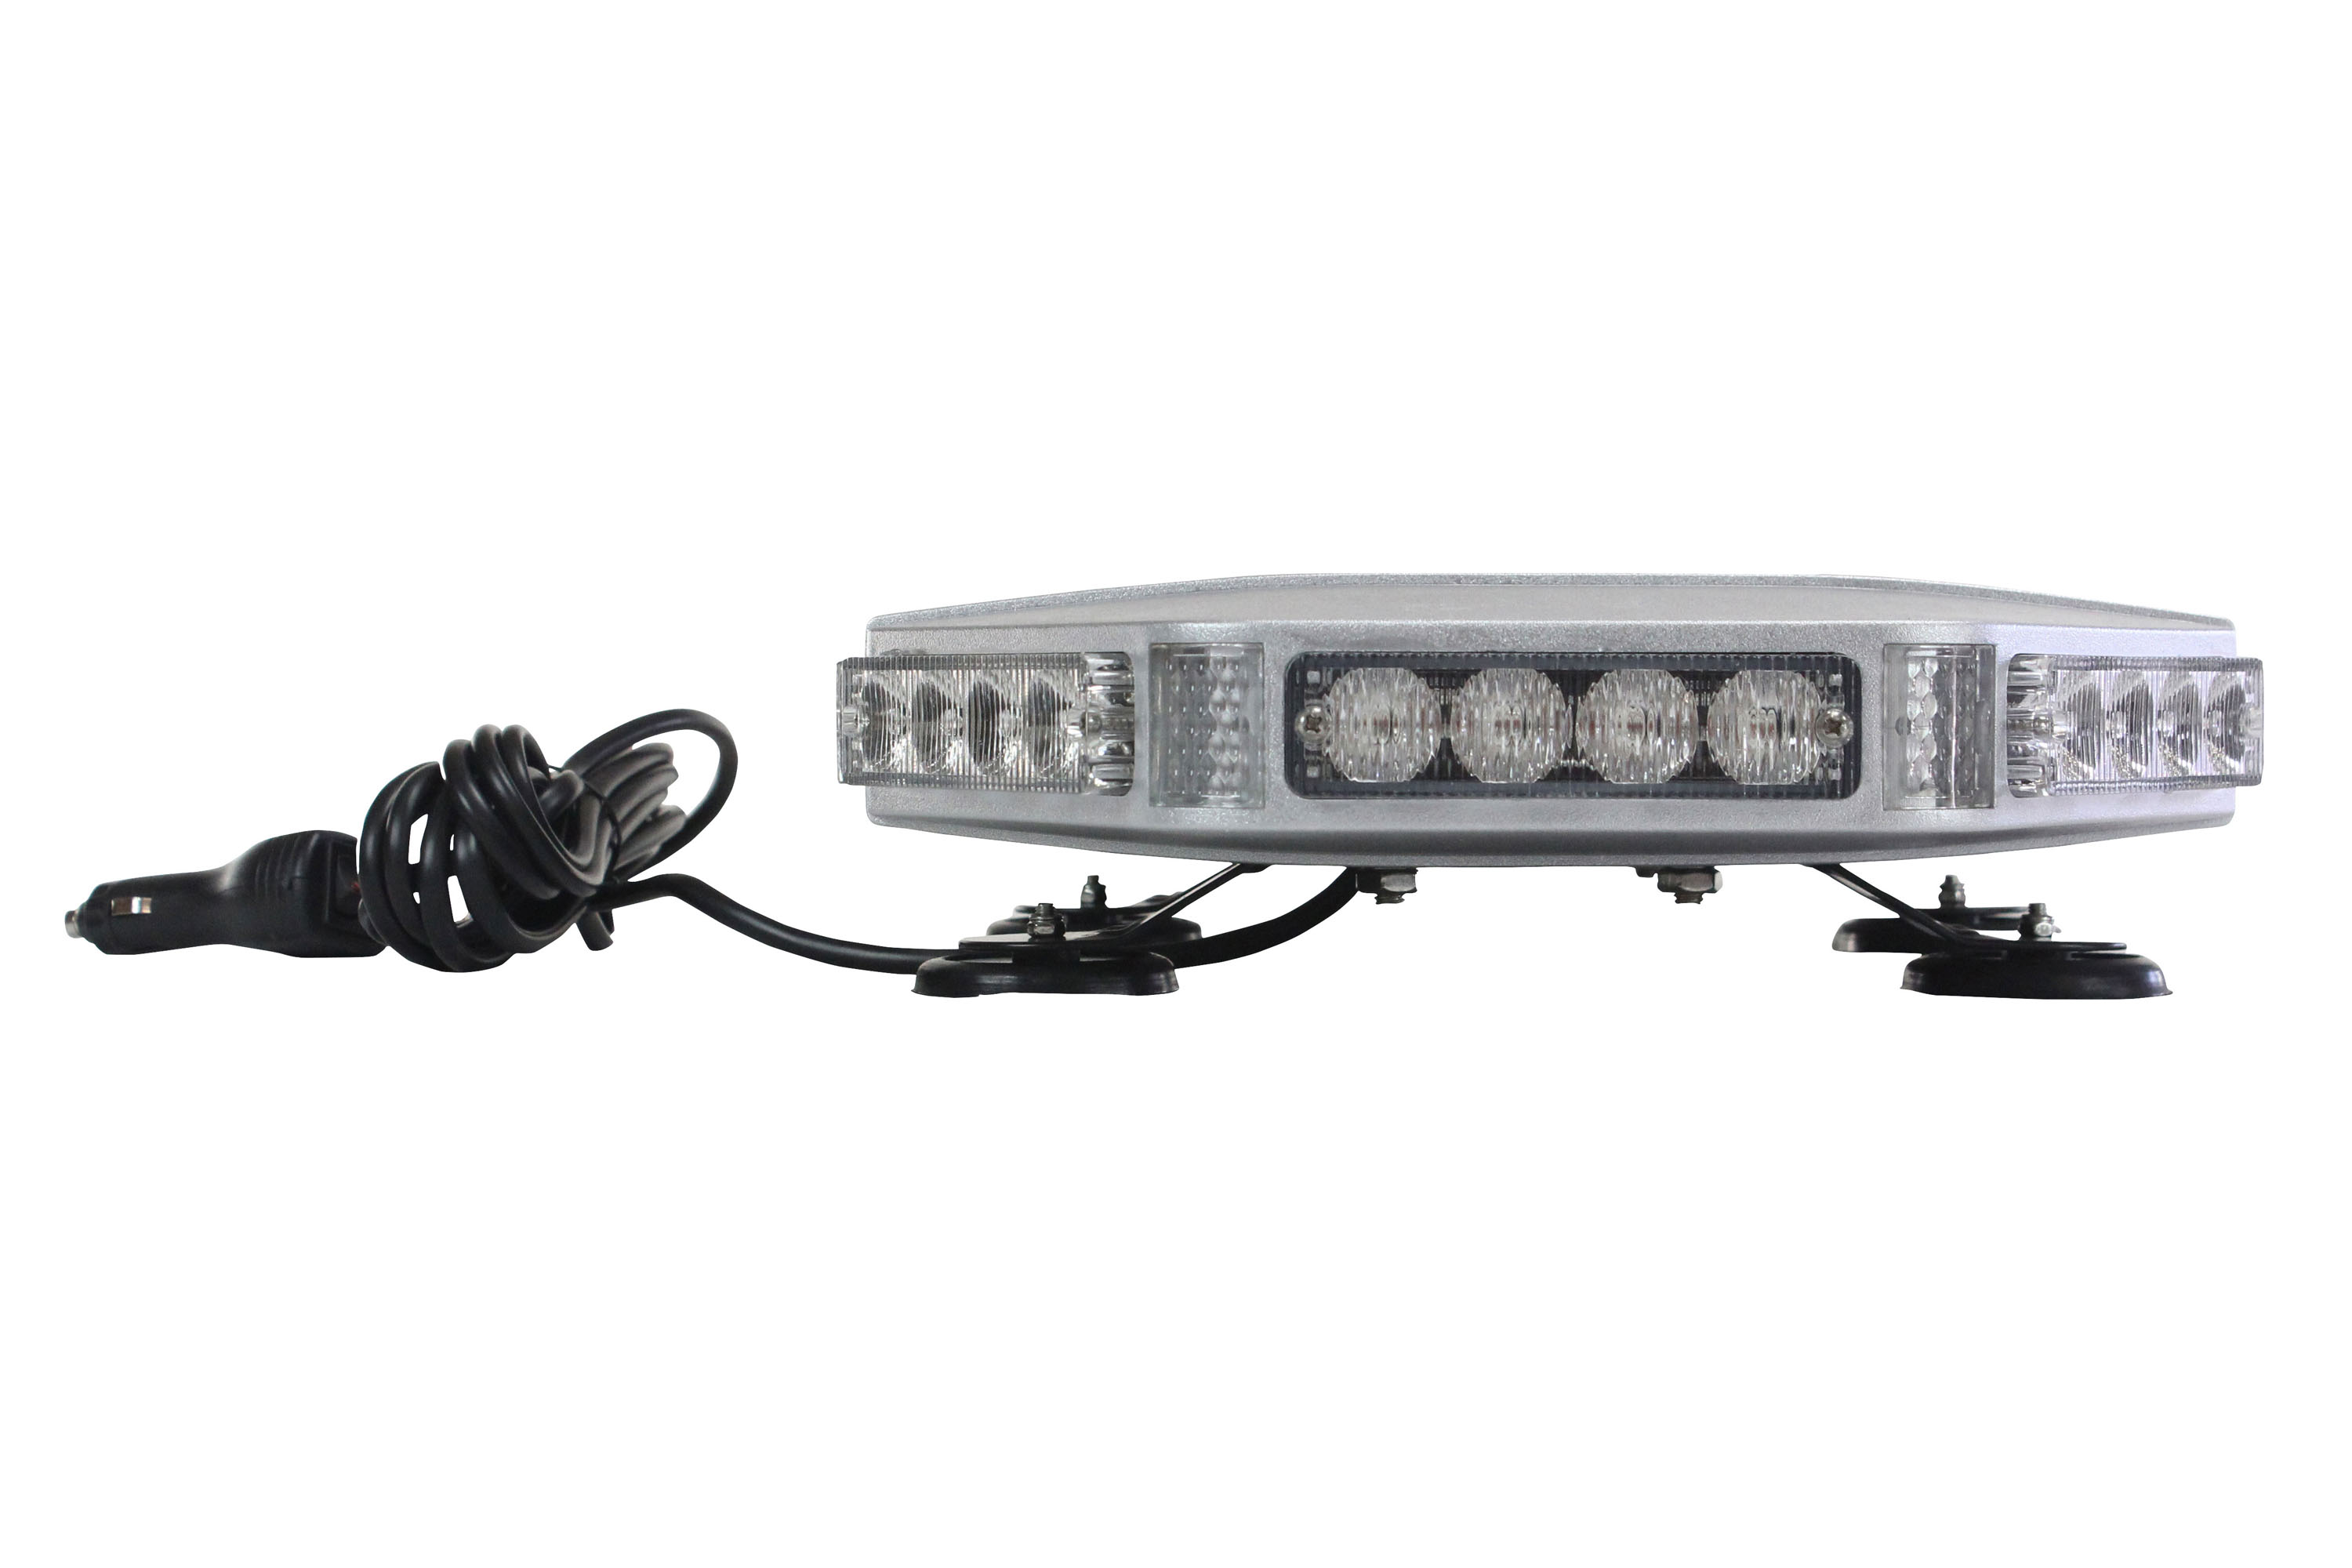 Larson electronics releases 32 watt magnetically mounted mini led 32 watt mini led strobe light bar with magnetic mount aloadofball Gallery